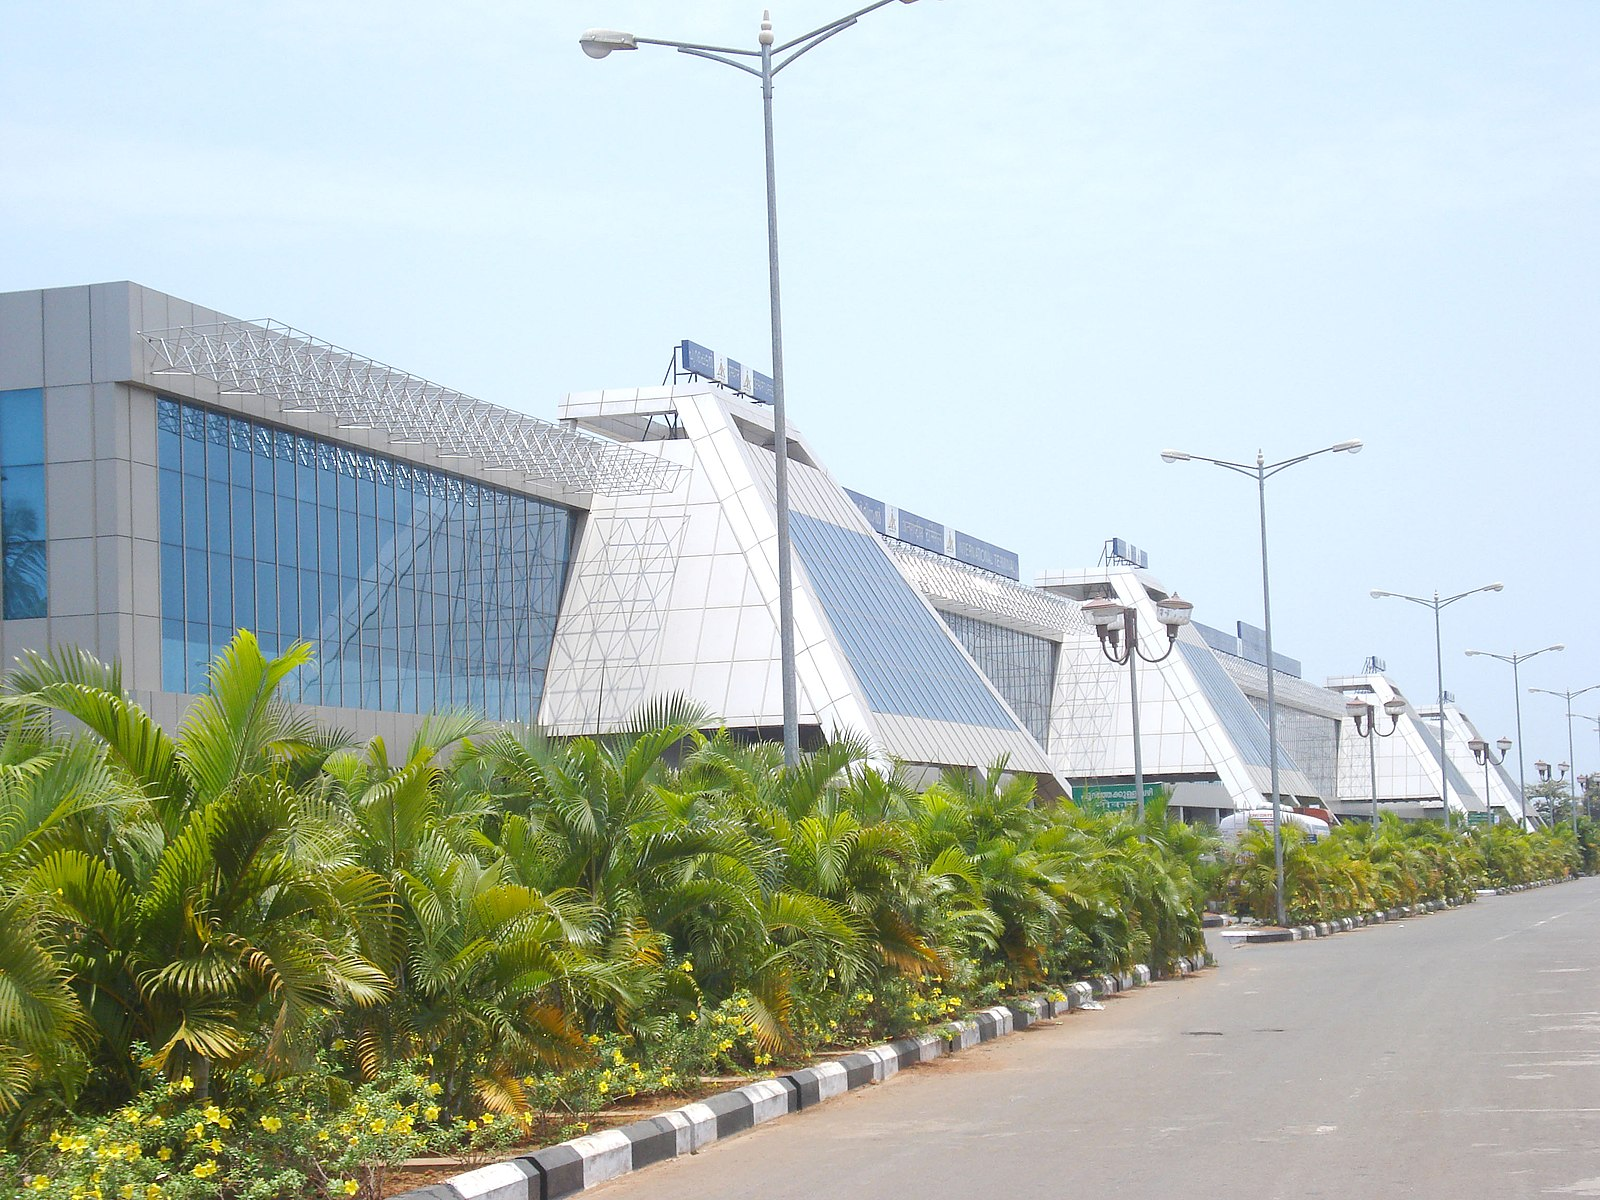 Kozhikode Calicut International Airport serves the cities of Malappuram and Kozhikode in India.